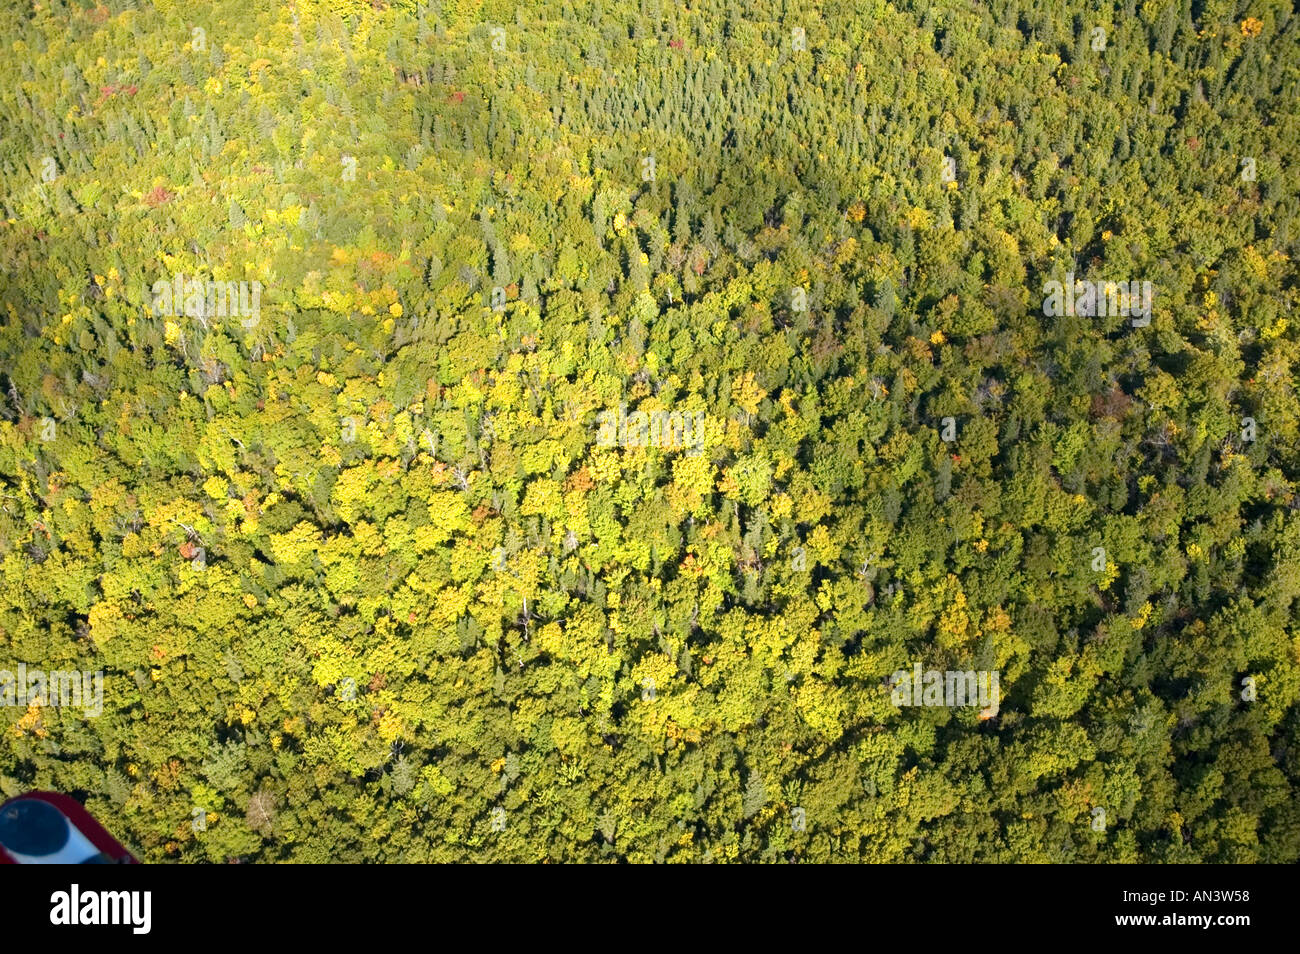 Aerial view of a Mixed hardwood and softwood forest in northern New Brunswick Canada near Dalhousie in early autumn - Stock Image